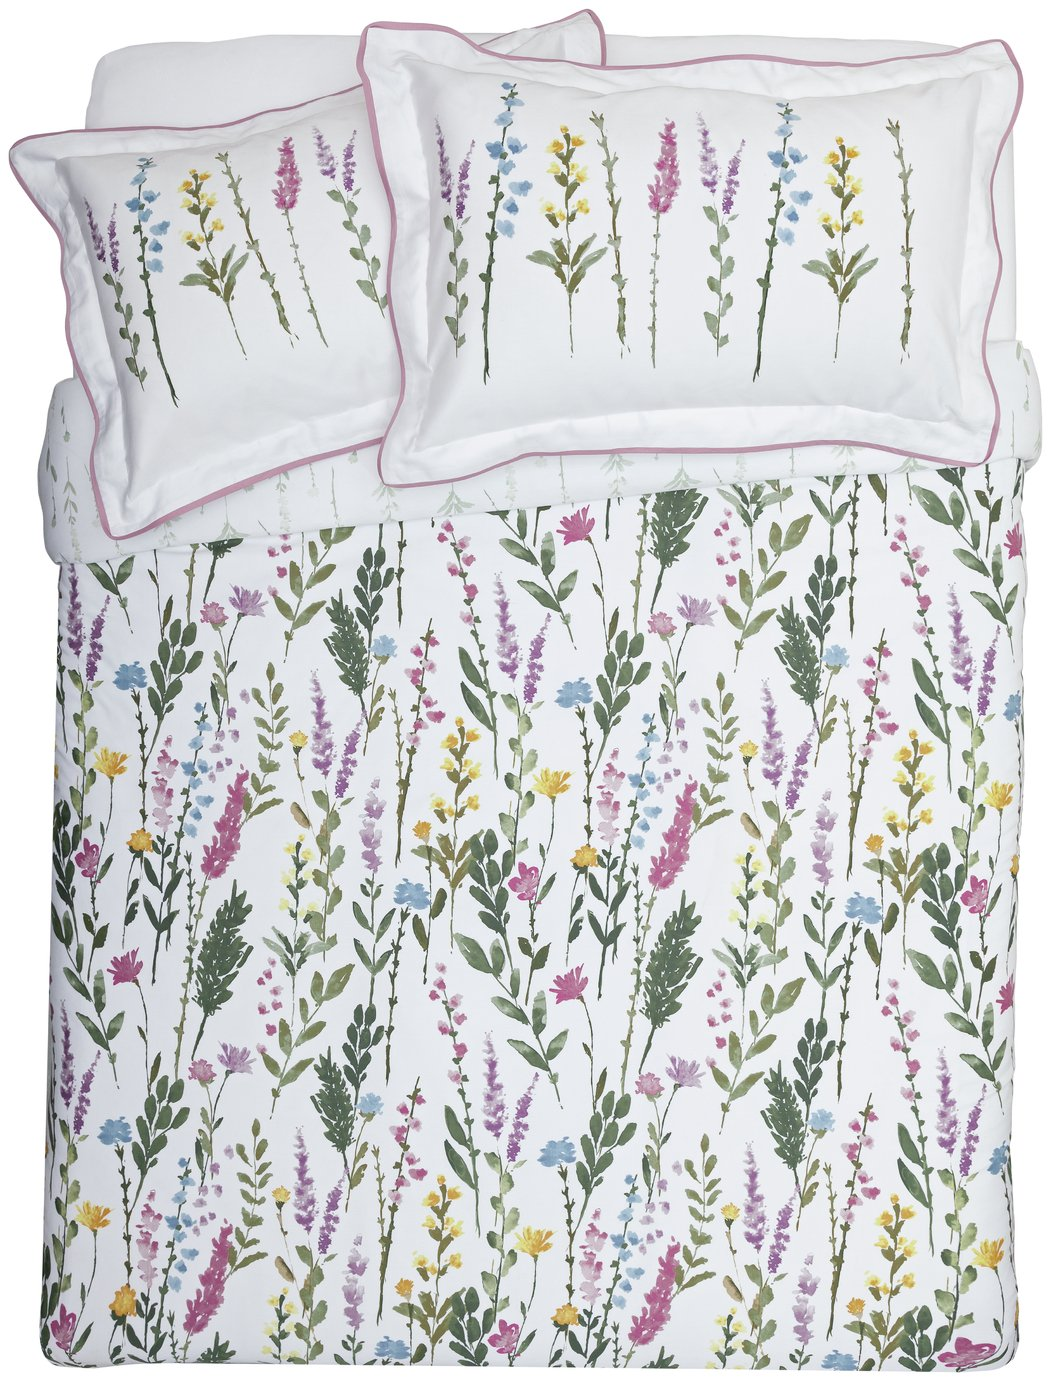 Argos Home Botanical Floral Bedding Set - Double